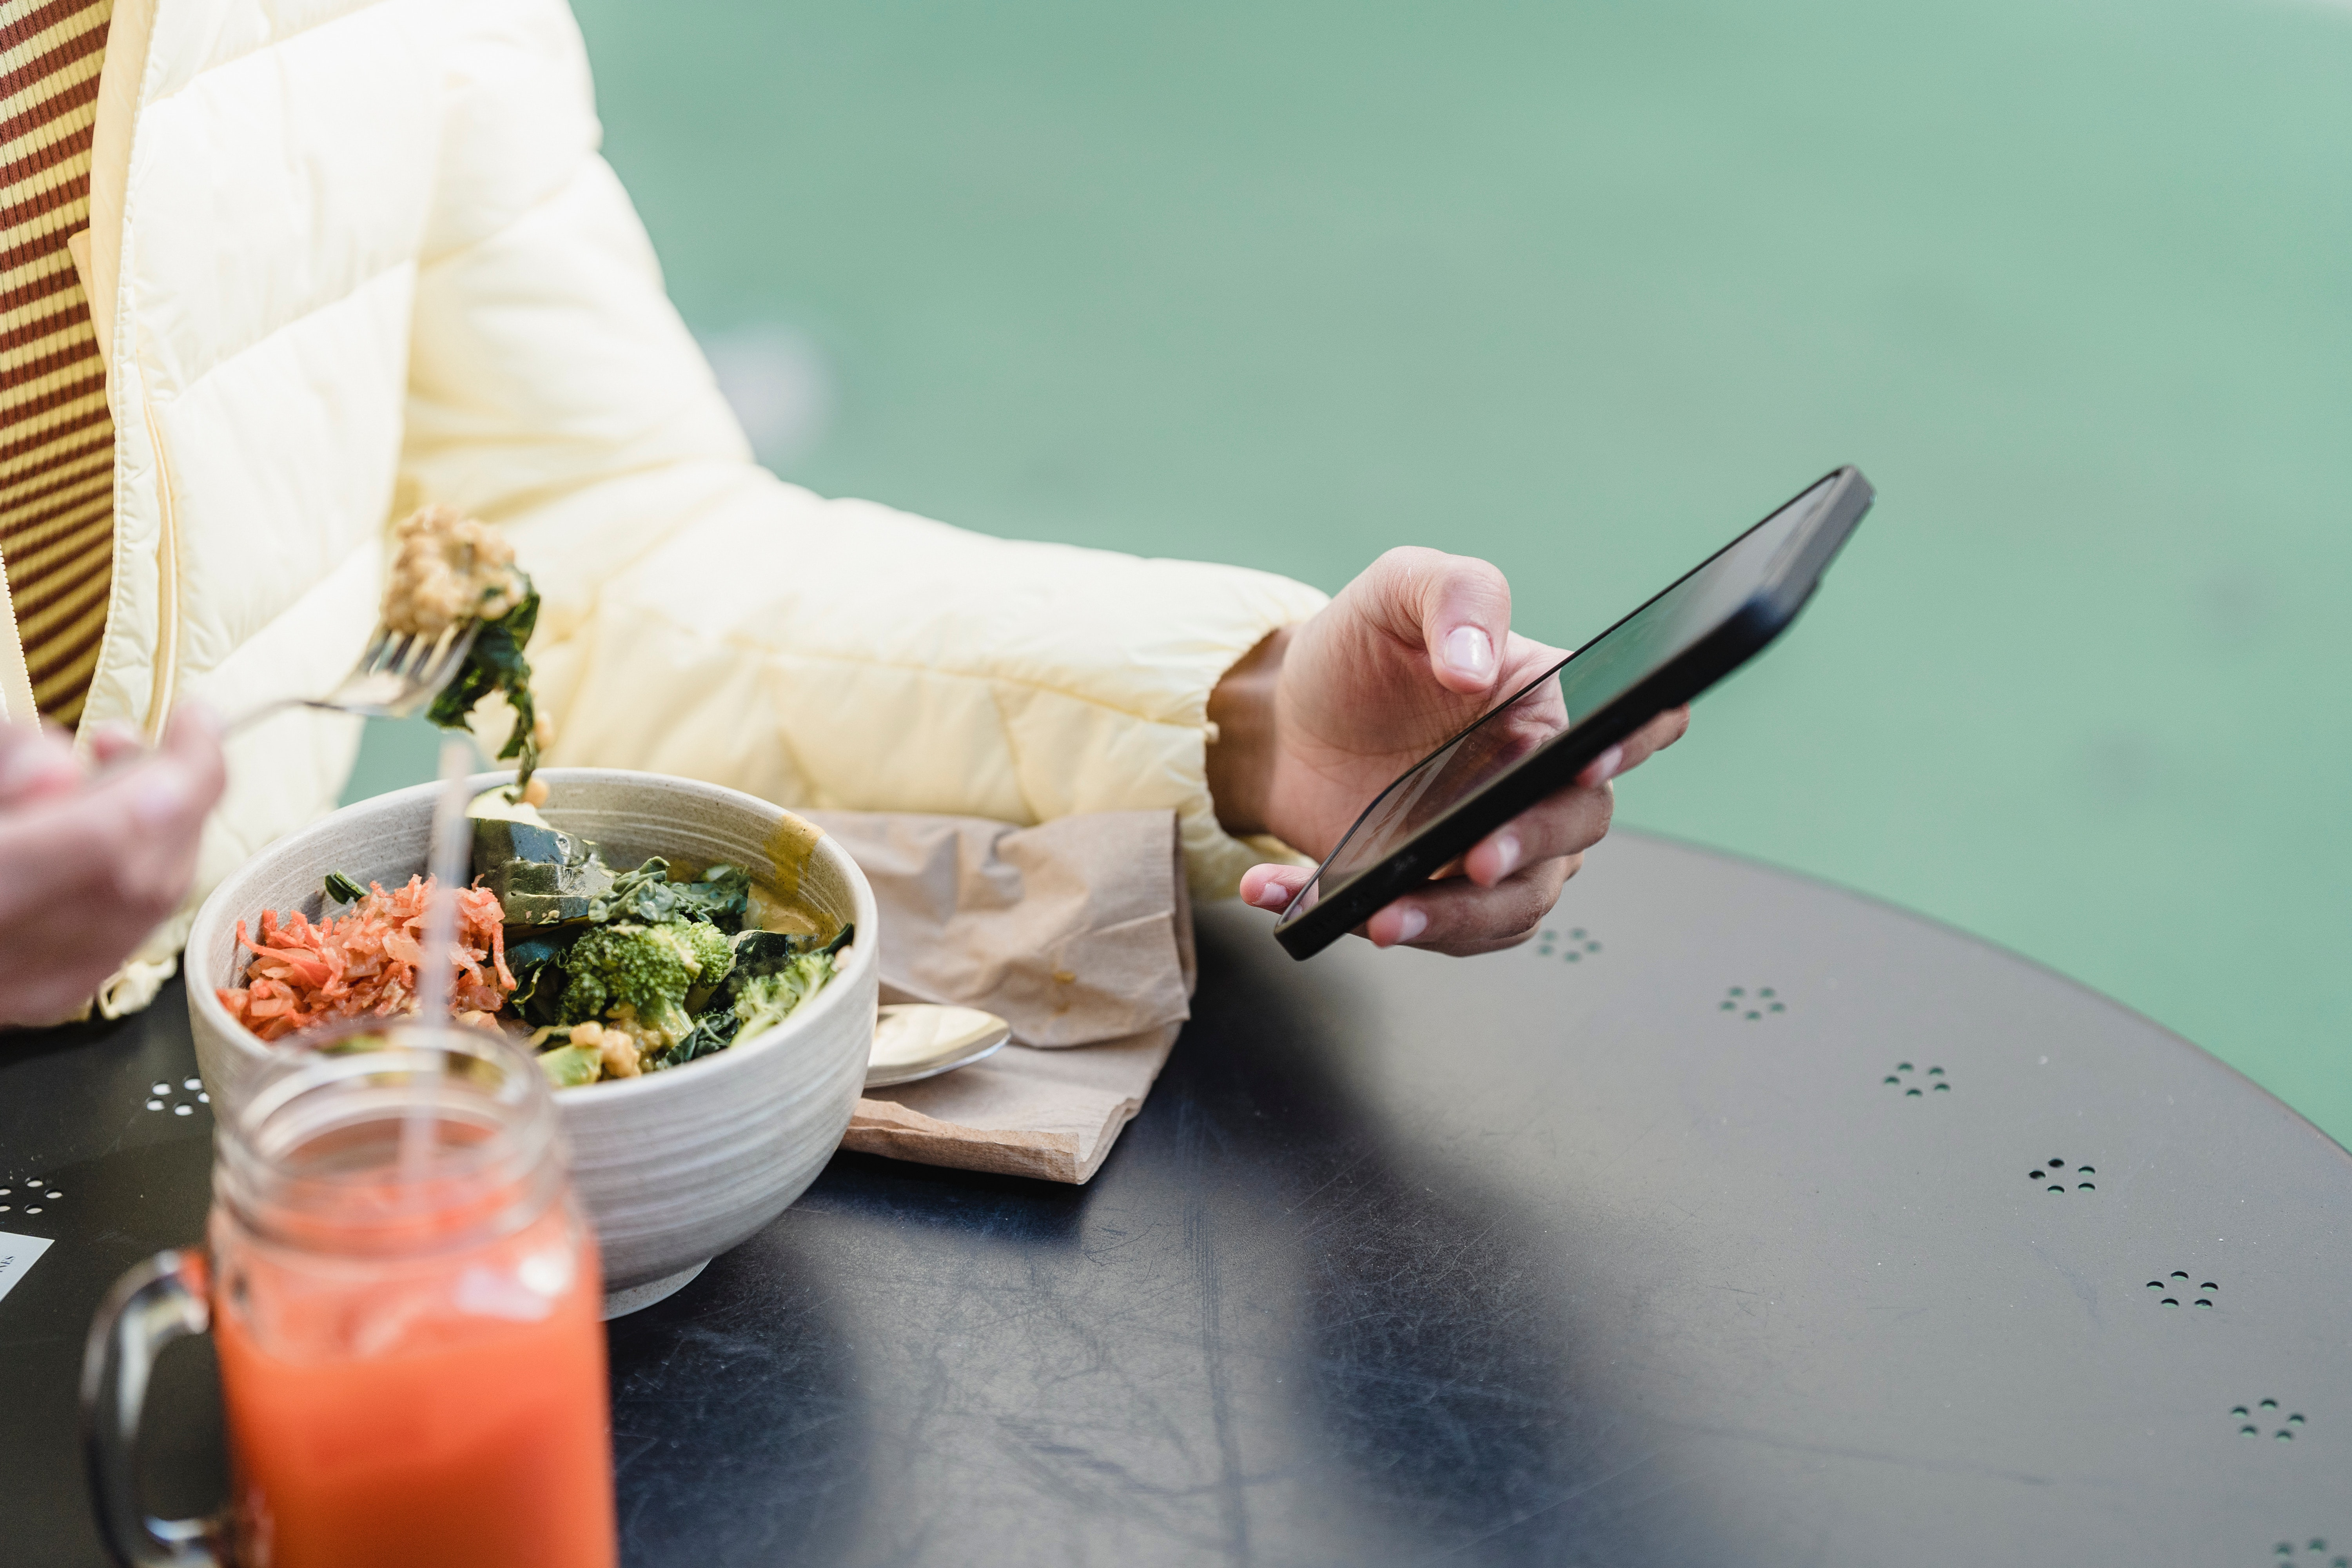 Are Meal Kit Delivery Services Budget-Friendly?